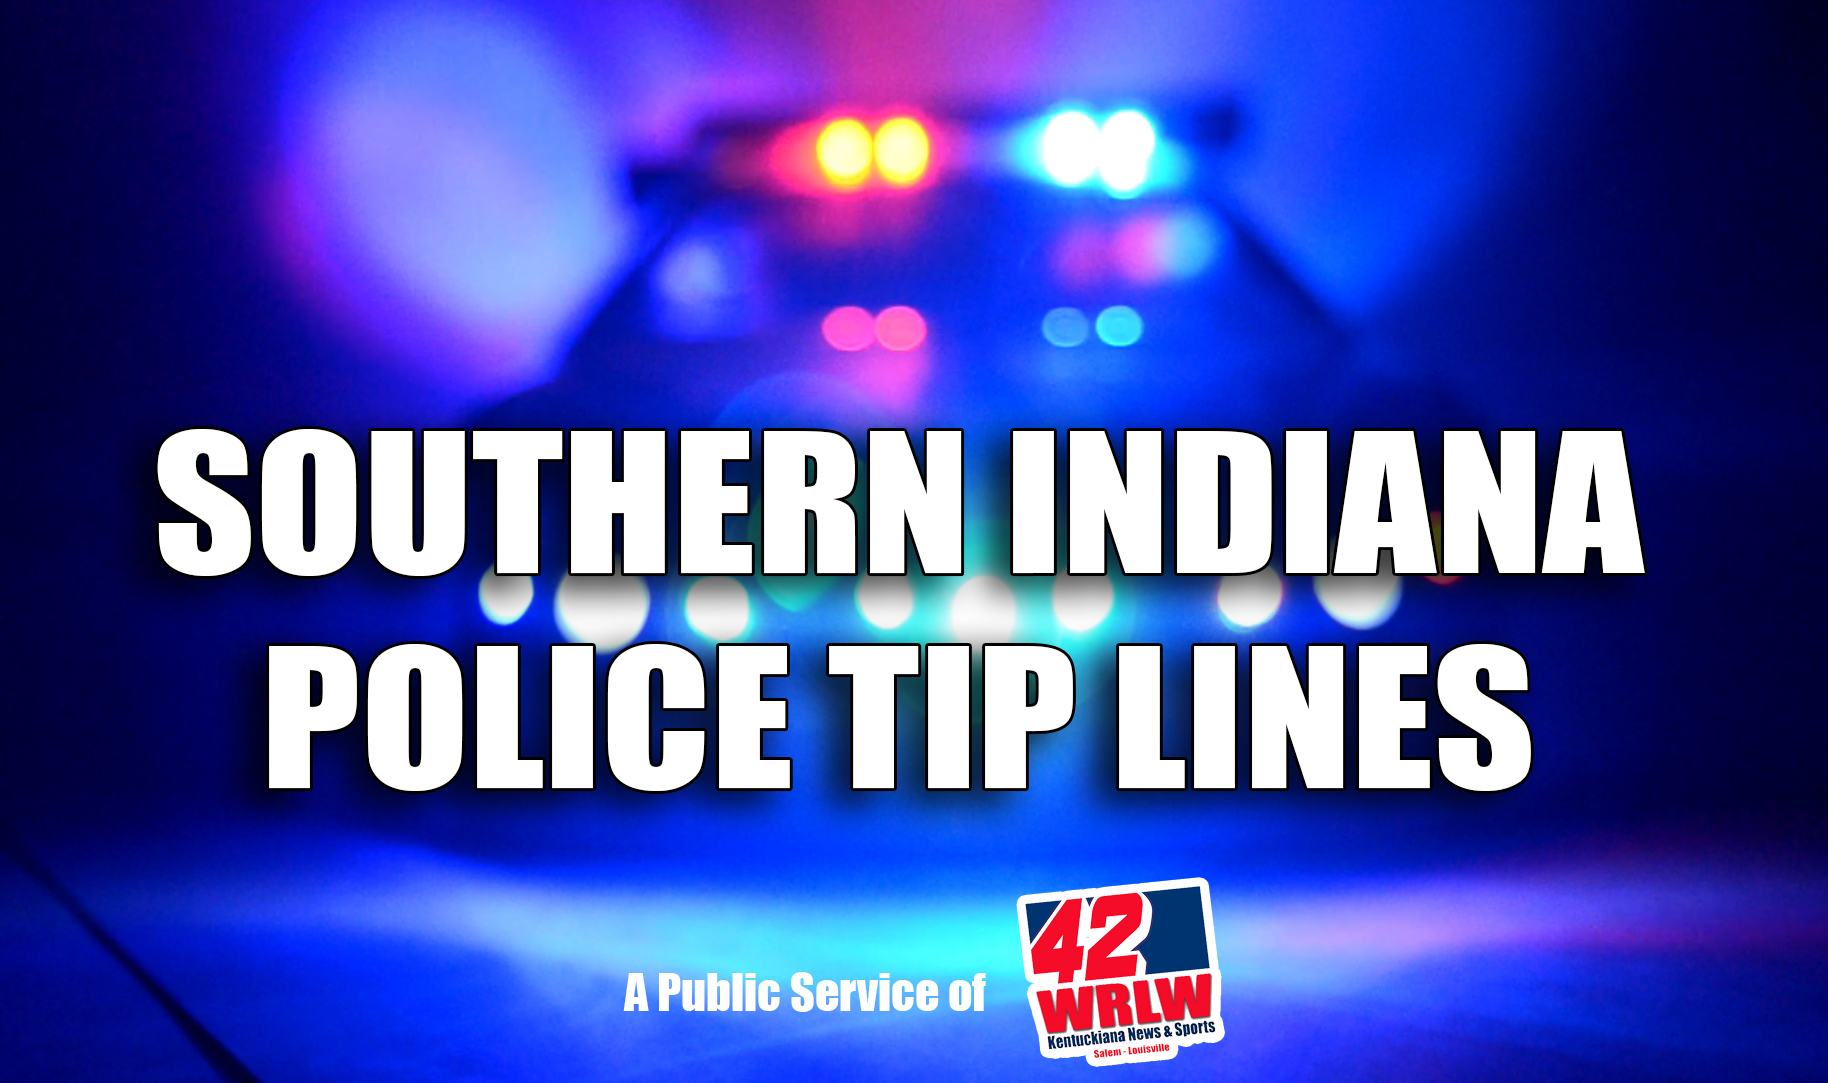 Report a Crime Tip Online or By Phone | WSLM RADIO